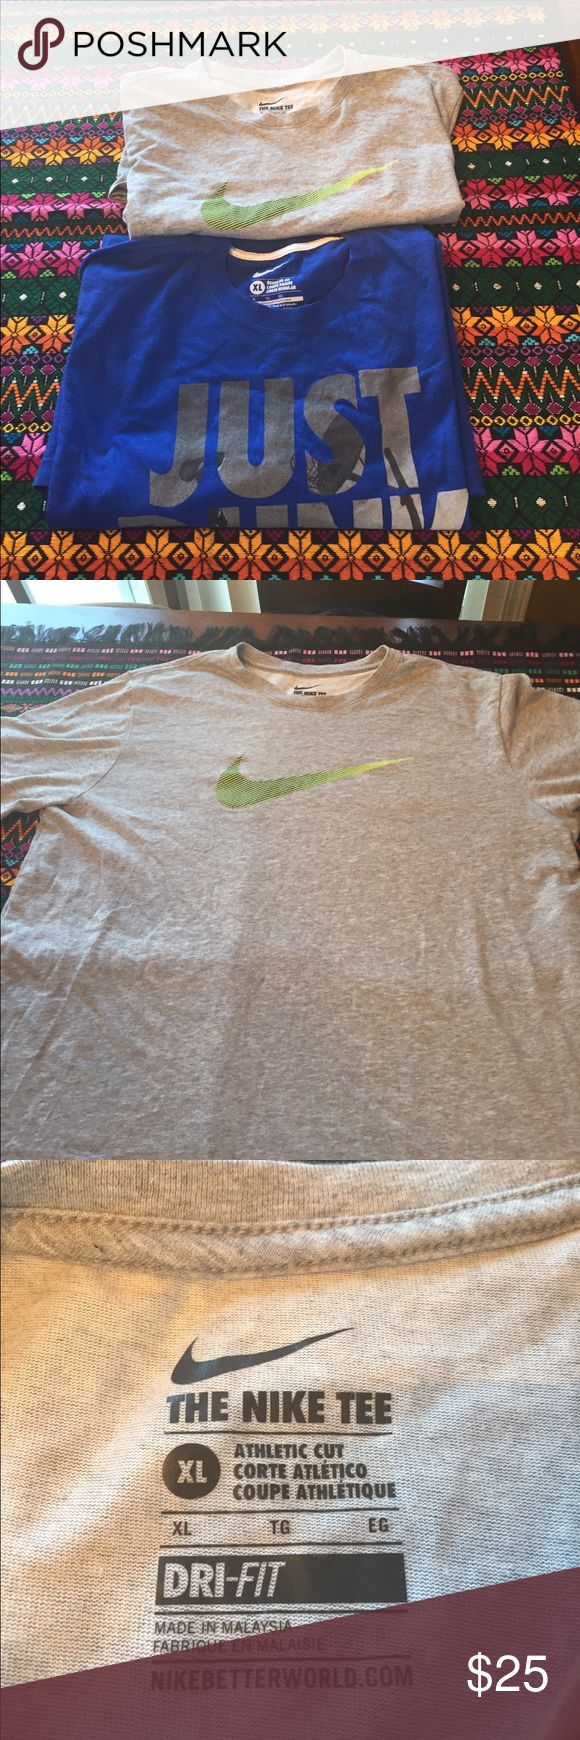 Nike T-shirts Up for sale are two Nike T-shirts one regular T-shirt the other is a dry fit both XL in great condition graphics look good price is negotiable Nike Shirts Tees - Short Sleeve